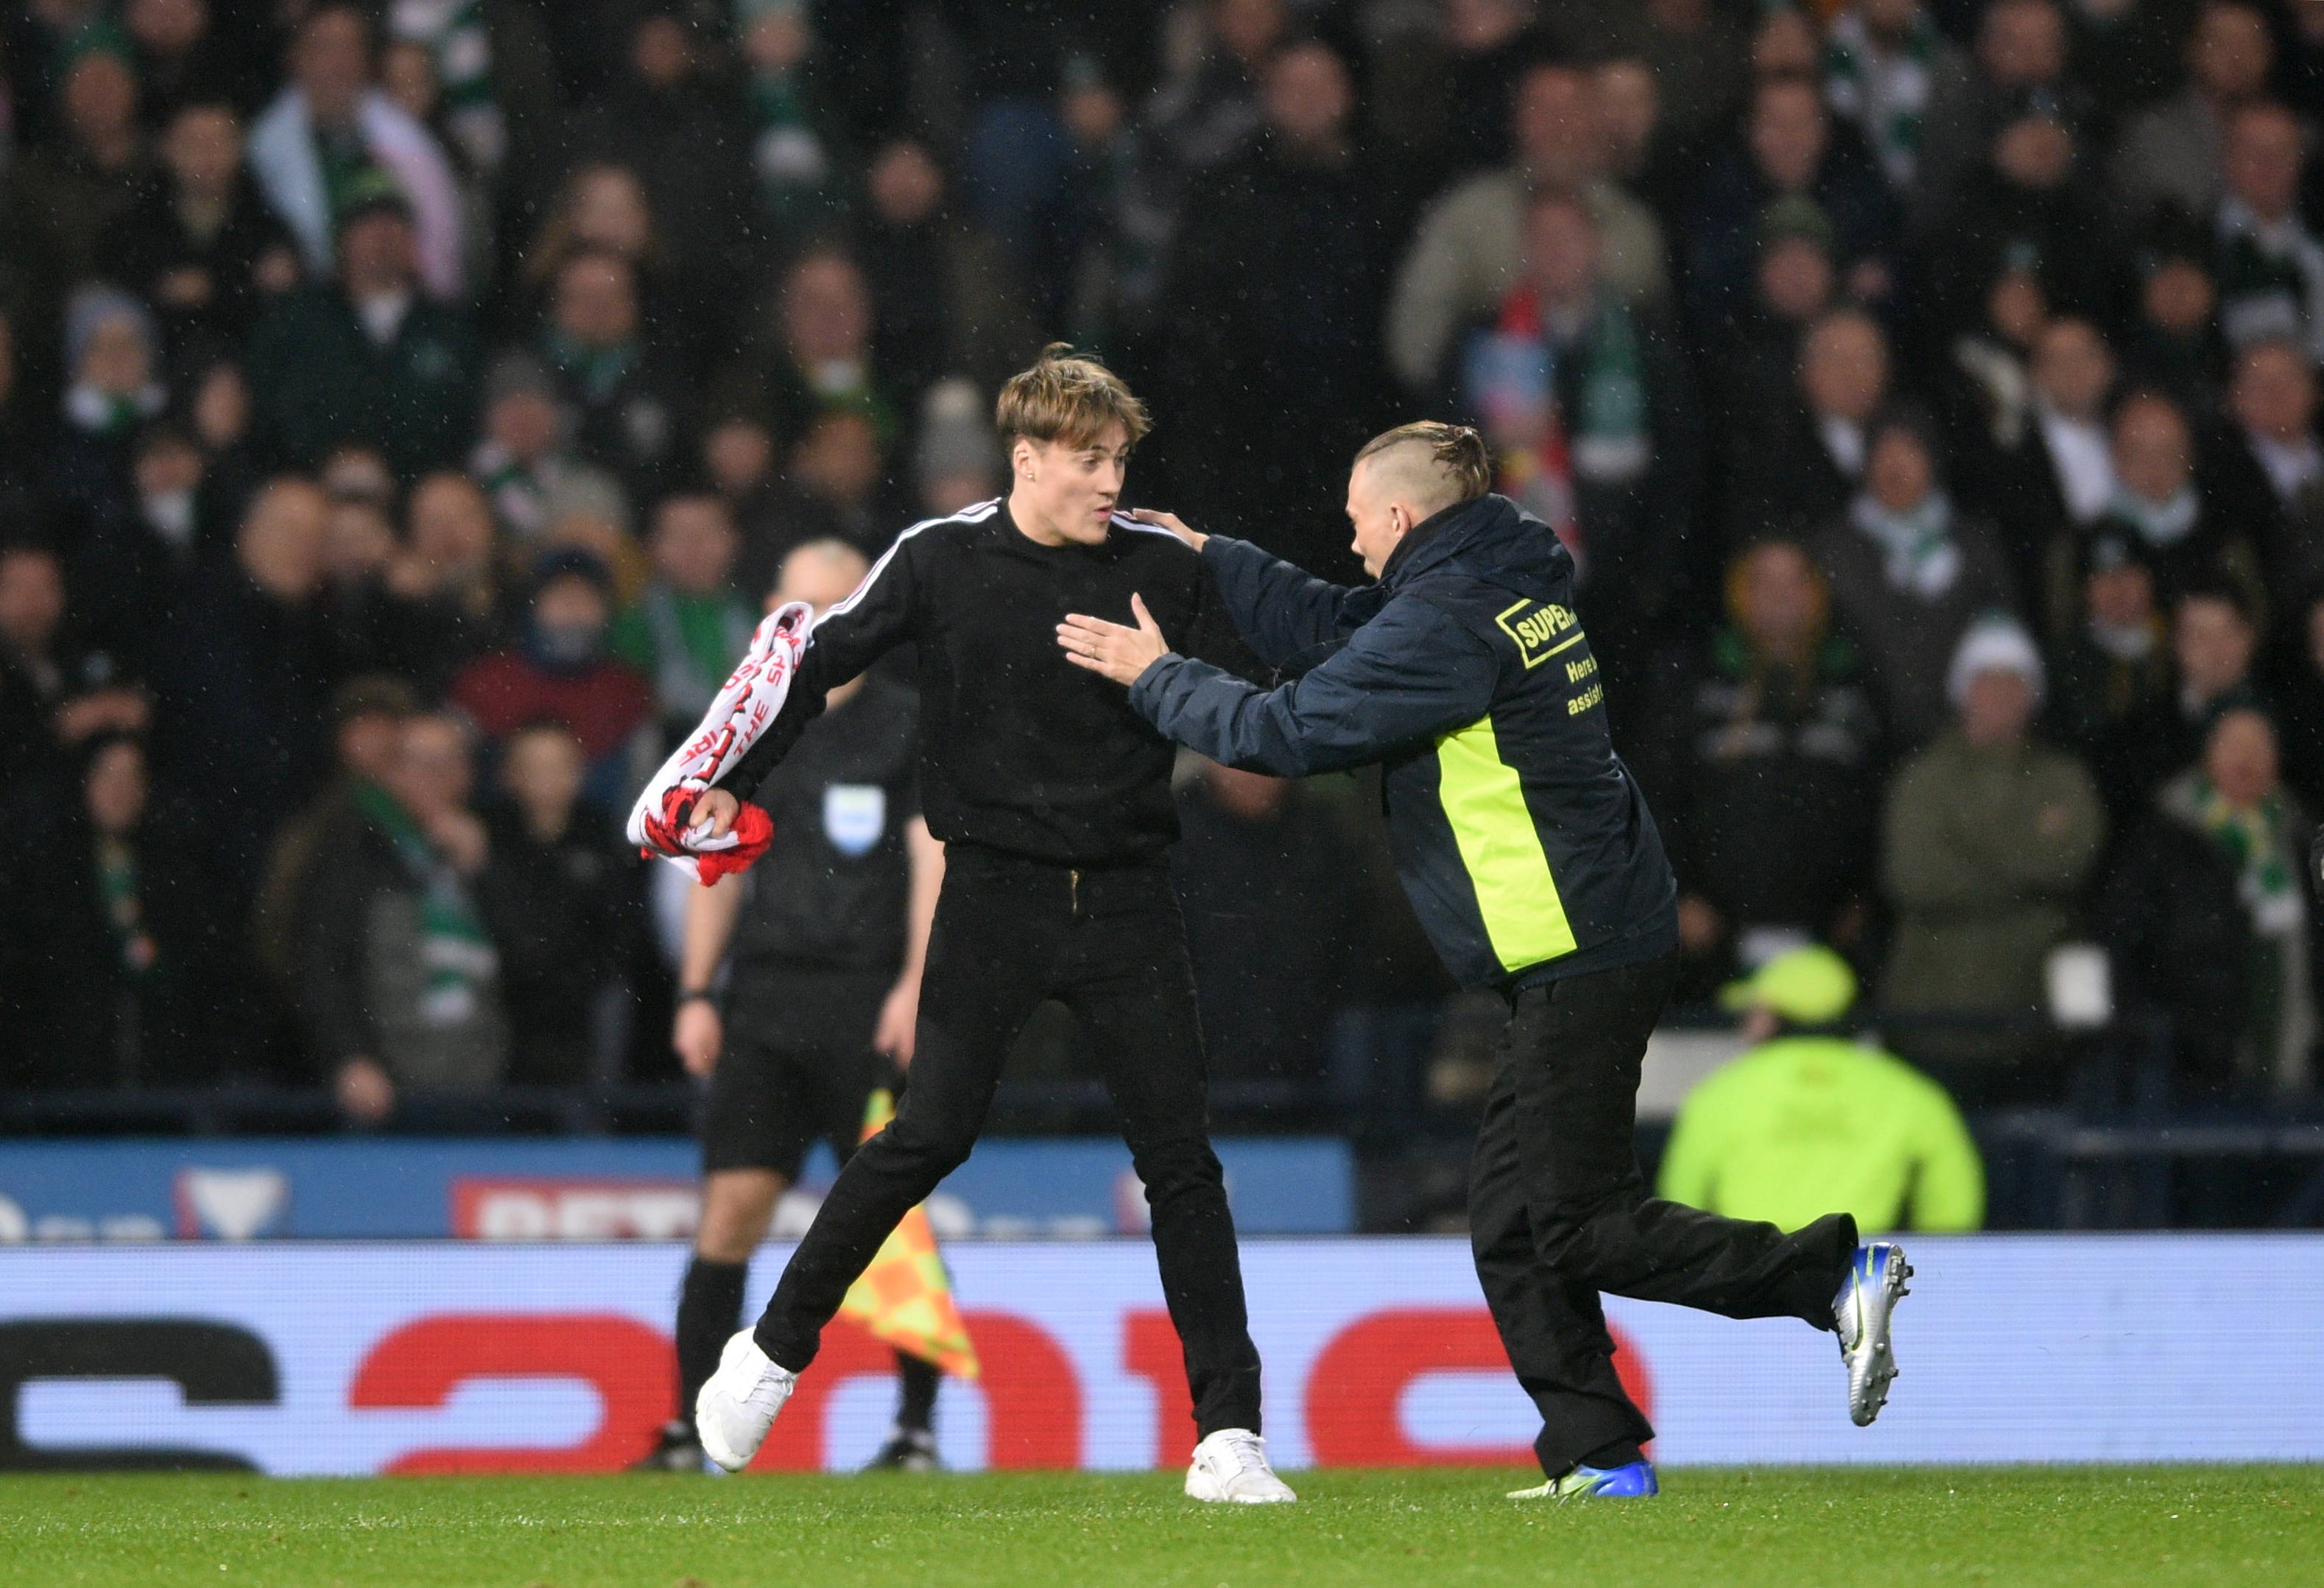 Dons fan Gavin Elpinstone raced onto the pitch at Hampden.